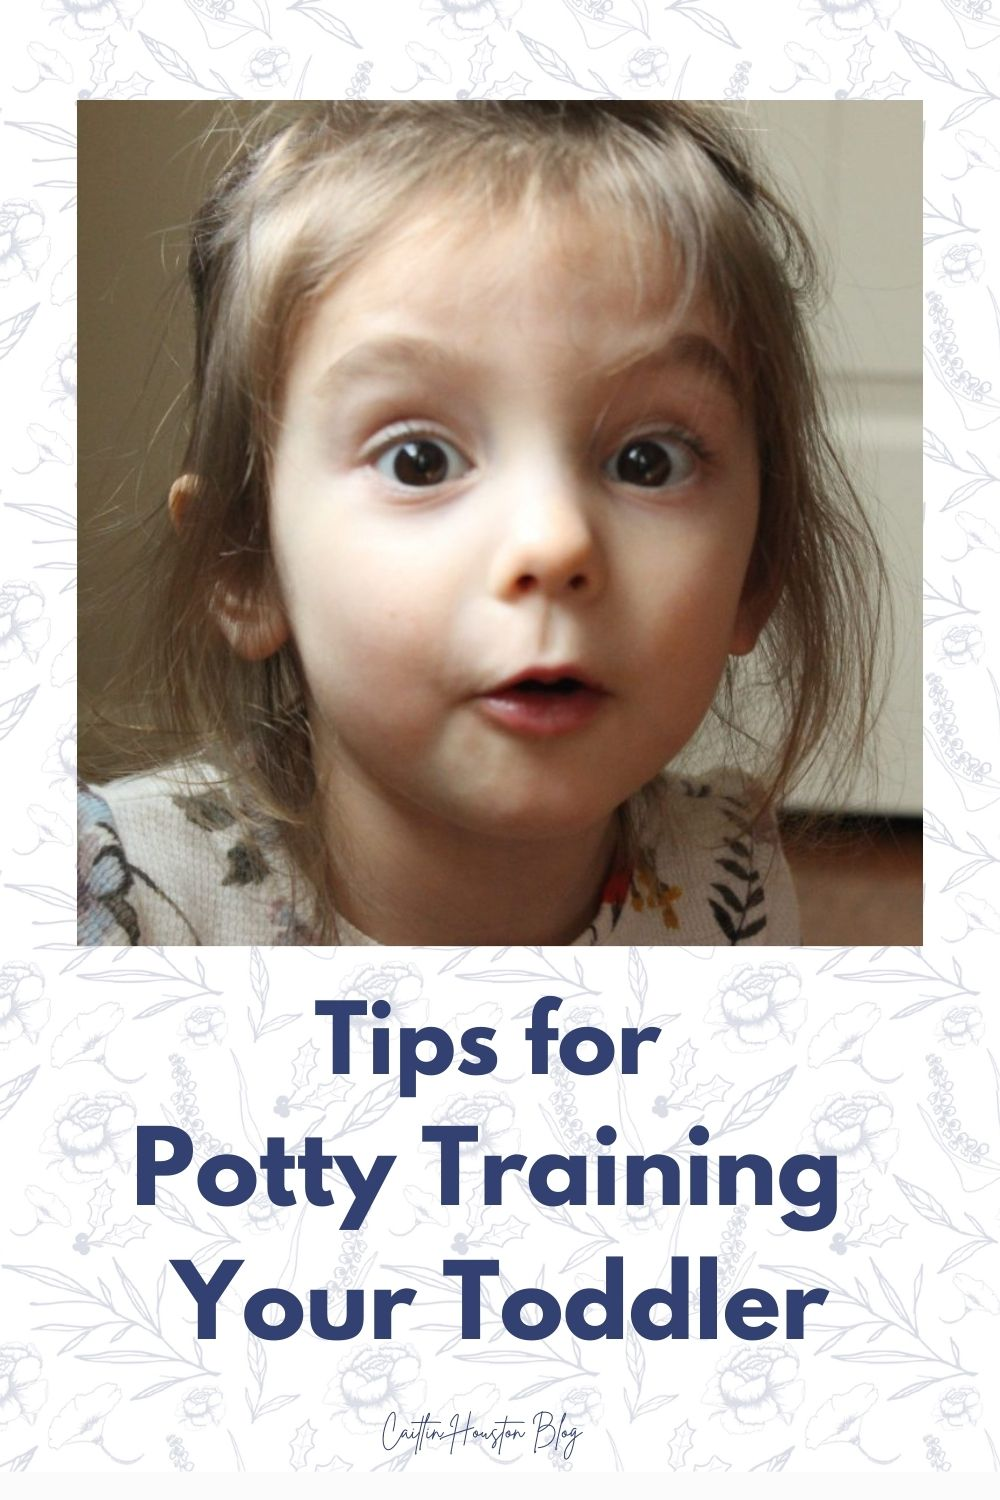 Tips for Potty Training Your Toddler